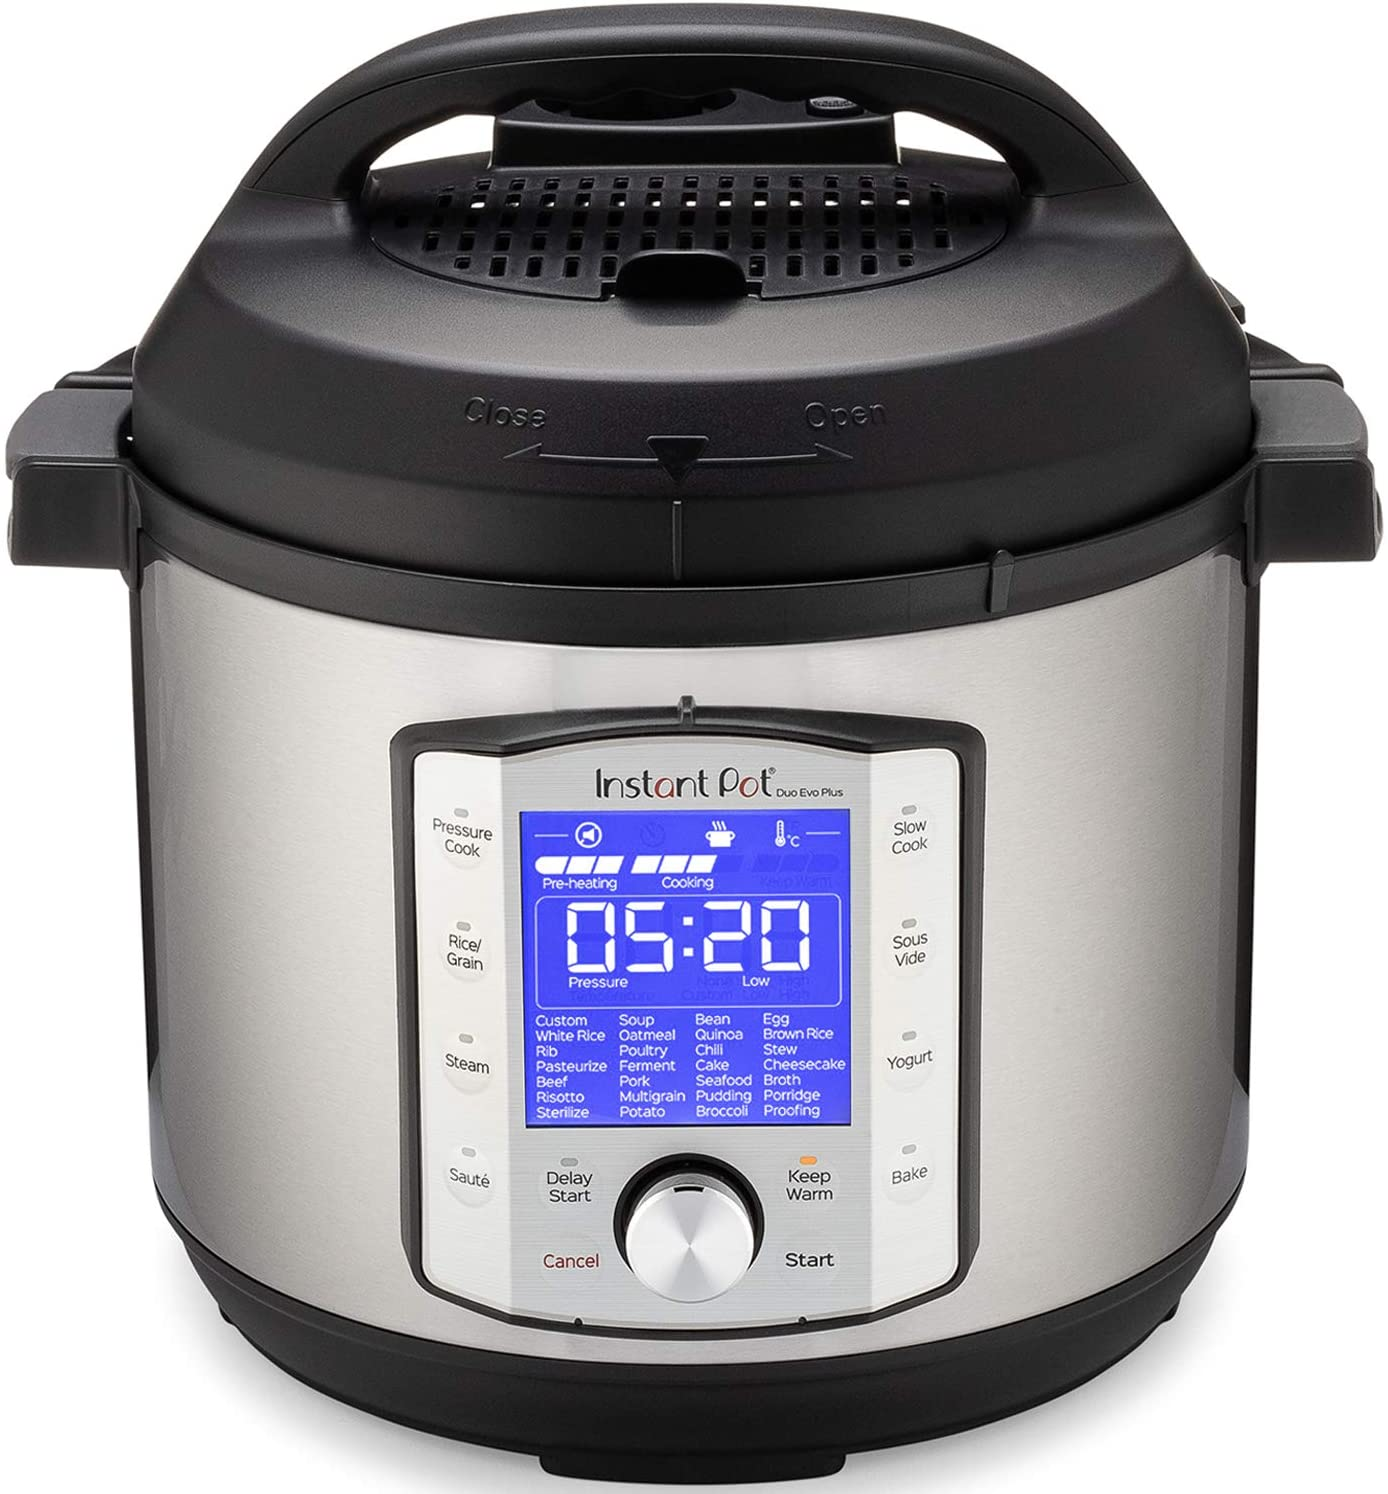 Instant Pot Duo Evo Plus Multicooker - Best Kitchen Gadgets